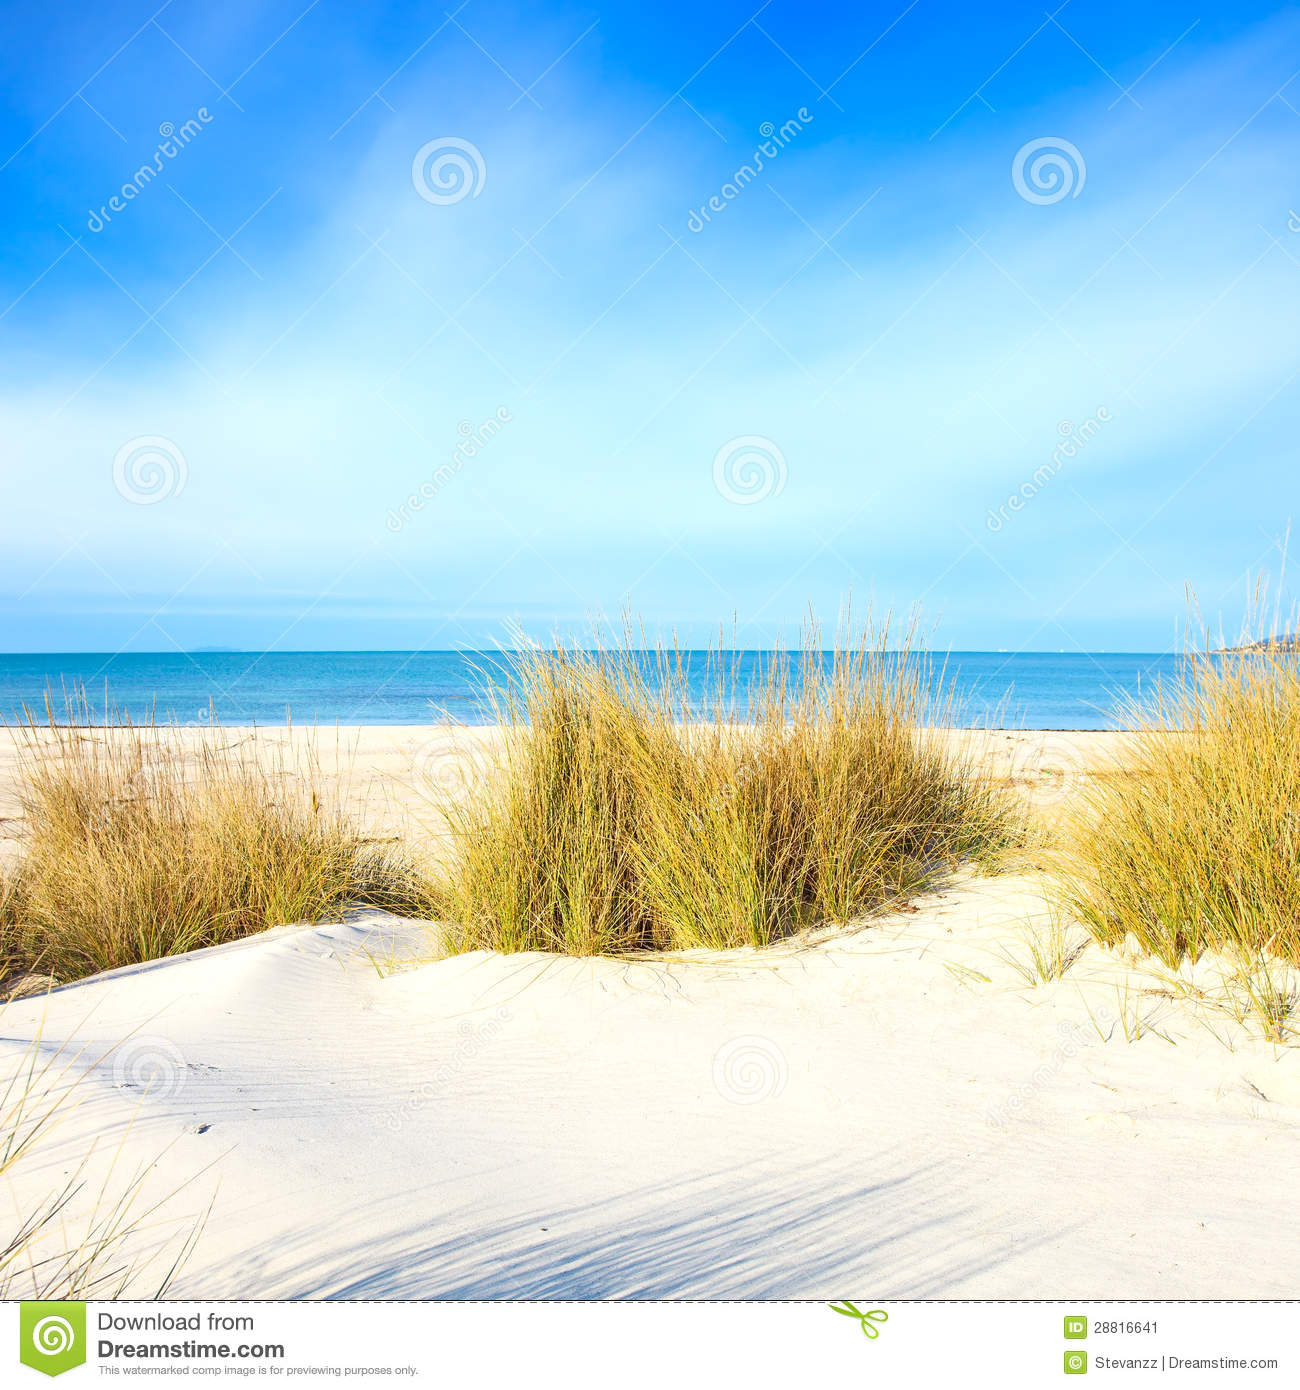 Download Grass On A White Sand Dunes Beach, Ocean And Sky Stock Image - Image of island, coastal: 28816641